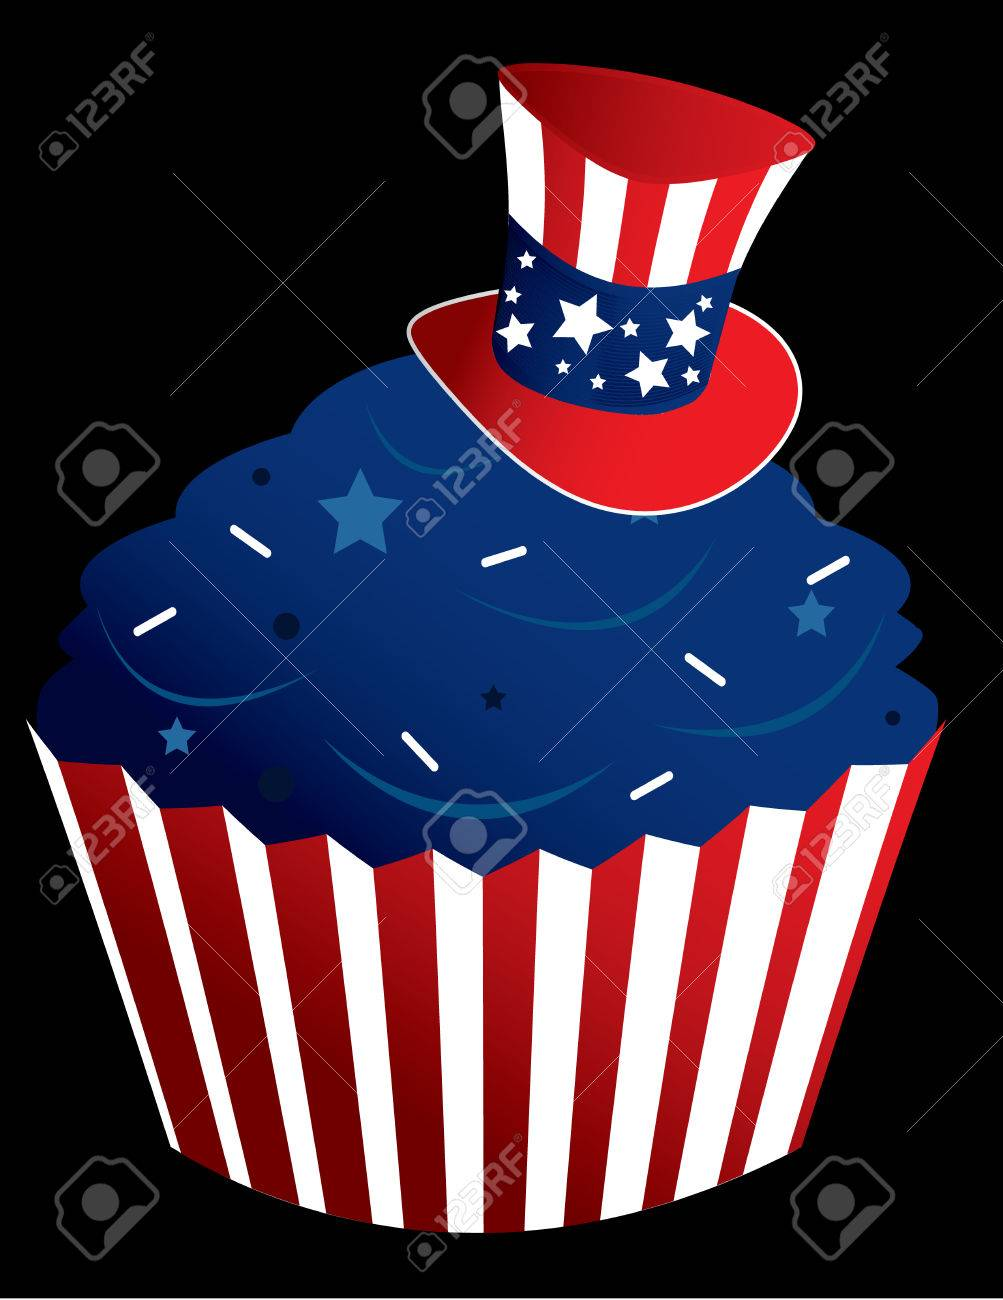 American themed cupcake in a striped wrapper with sprinkles Stock Vector - 6468305